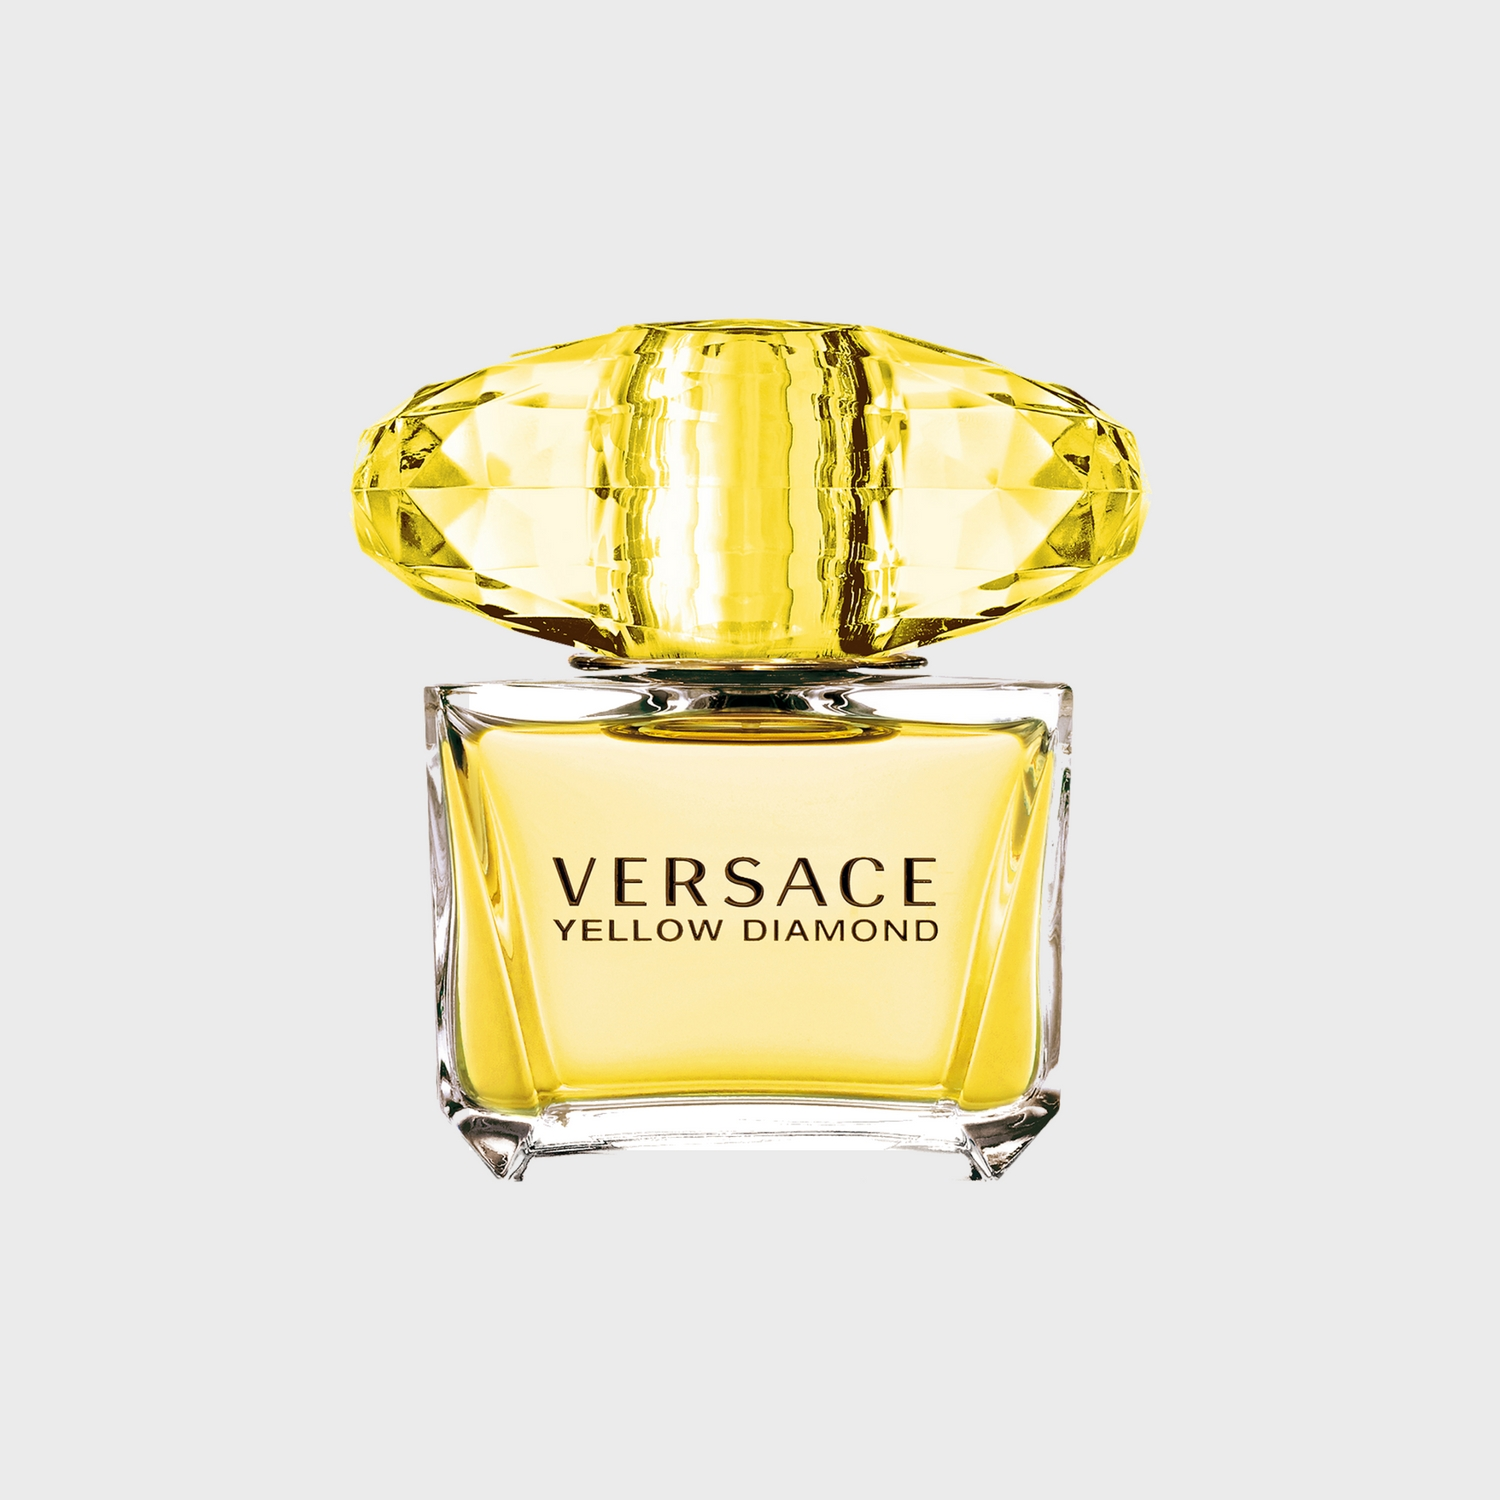 Versace Yellow Diamond Perfume Review | Versace